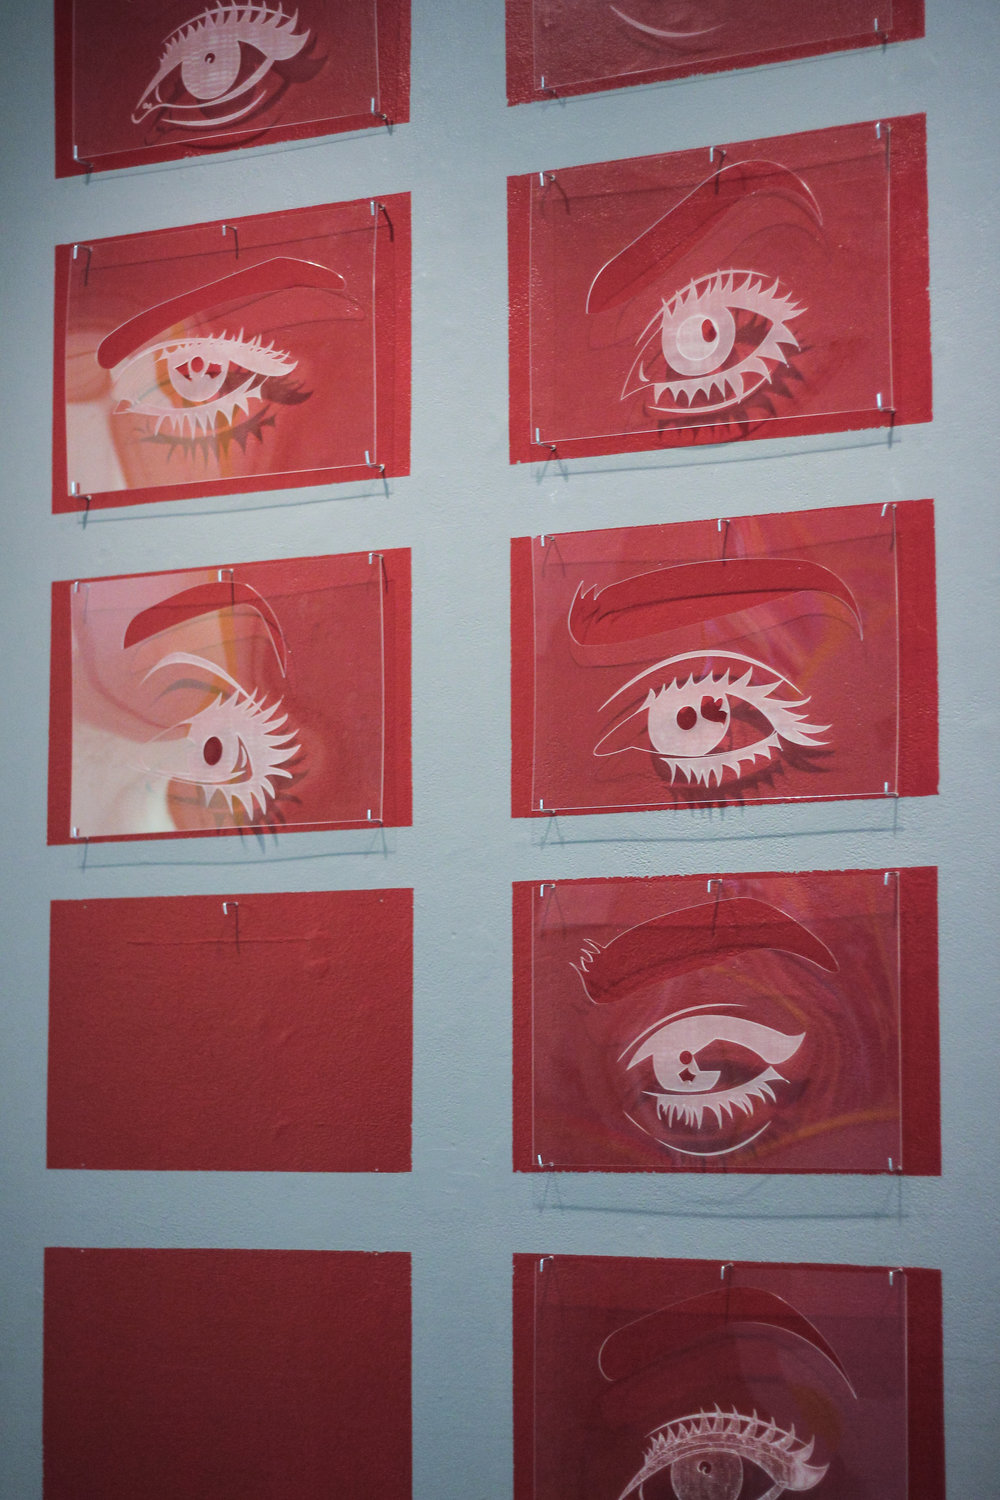 The installation of eyes of divorcees on the wall that accompanies Diana's project